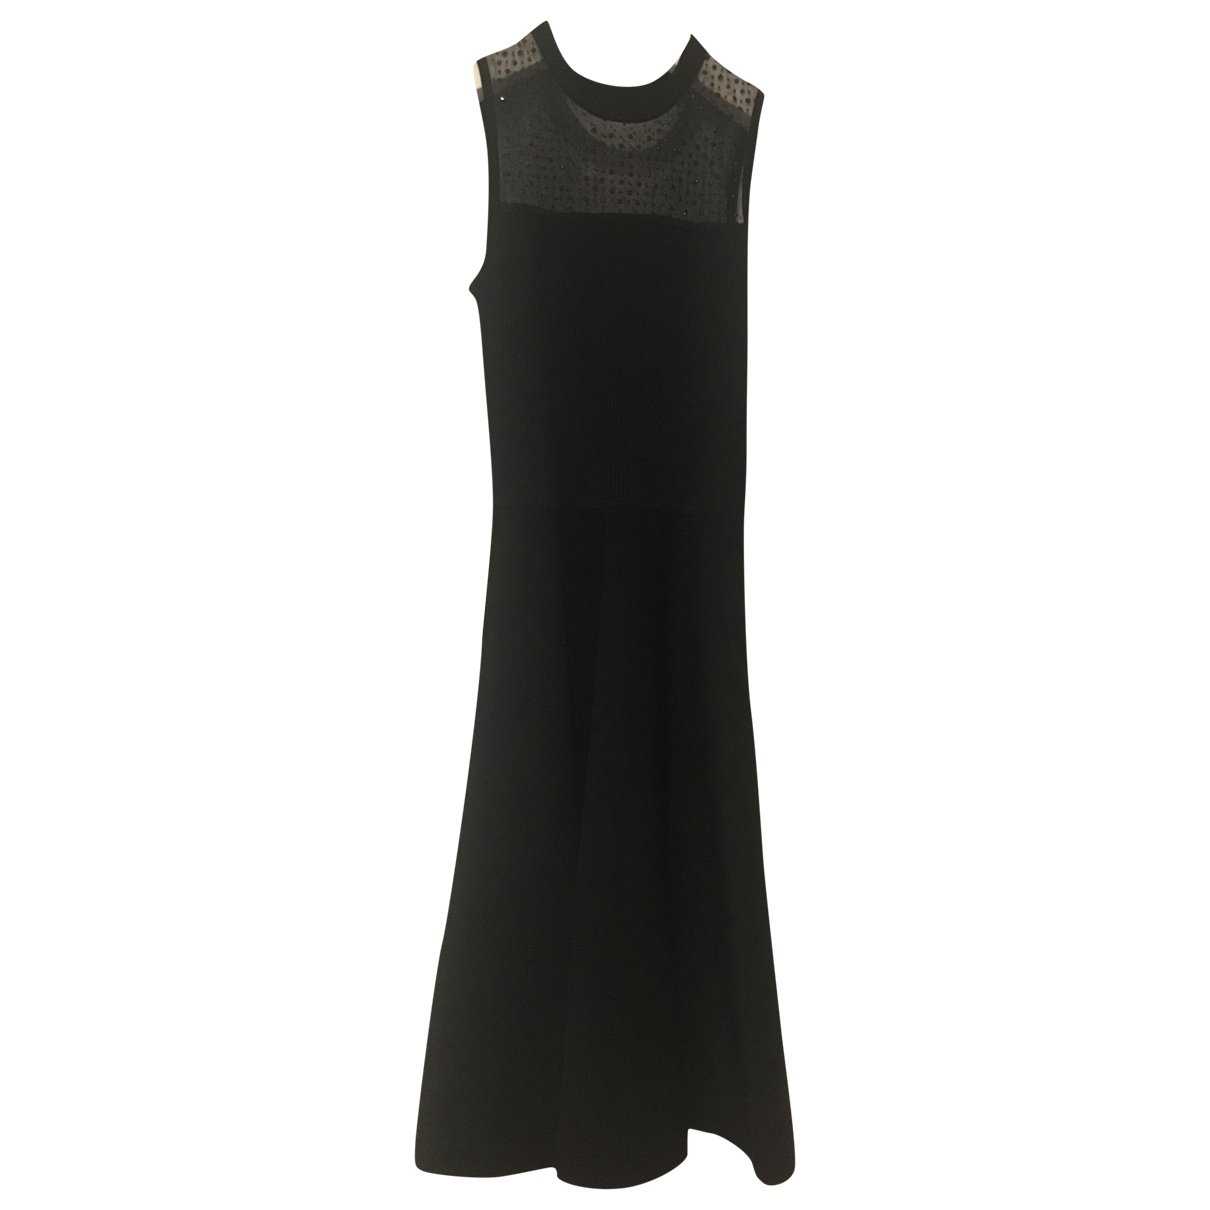 Jason Wu \N Black dress for Women XS International